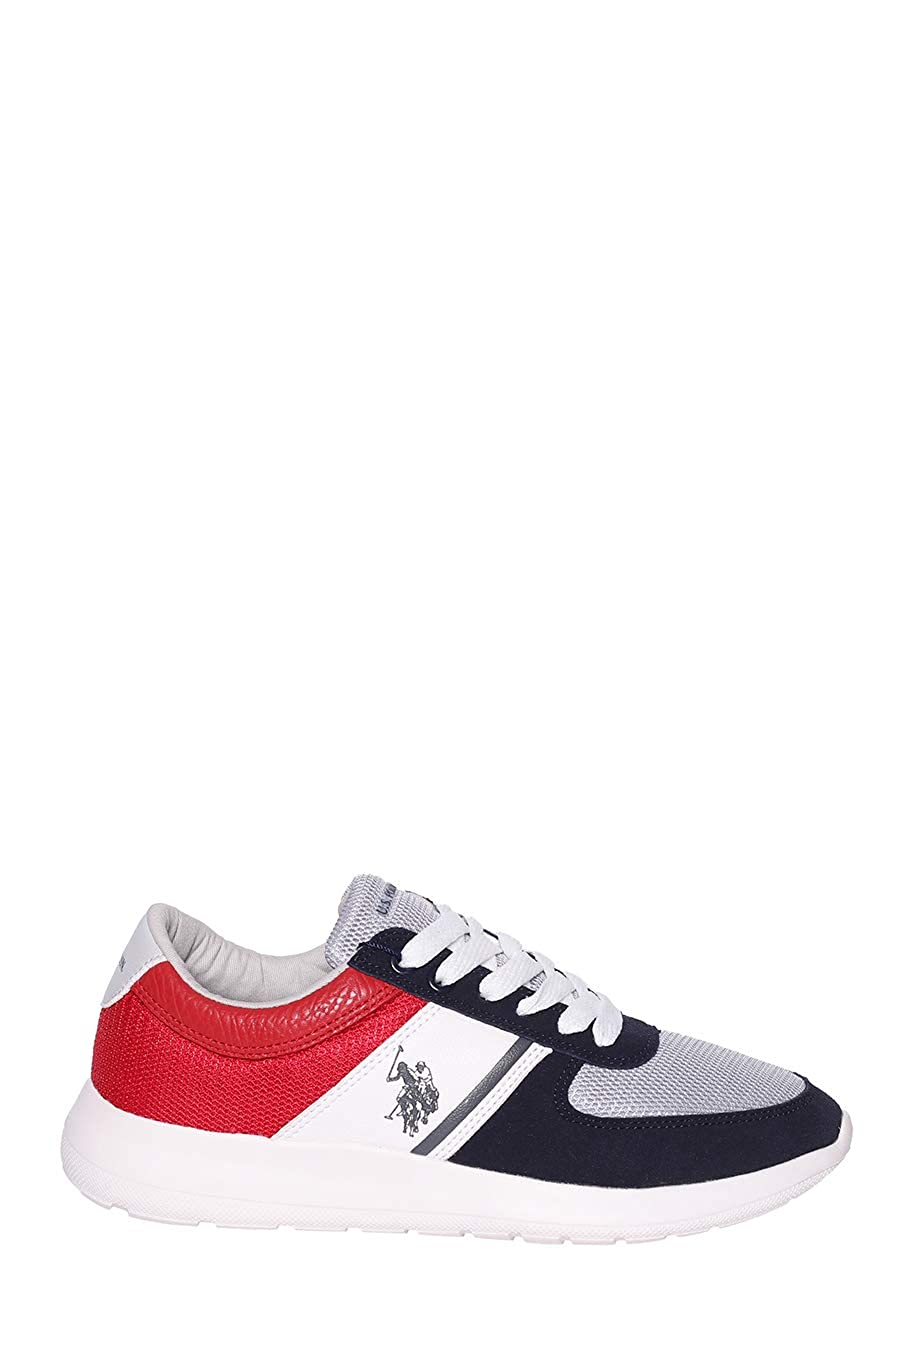 - U.S. POLO ASSN DILLIER Navy-RED FAREL4027S9 MY1 Men's Trainers